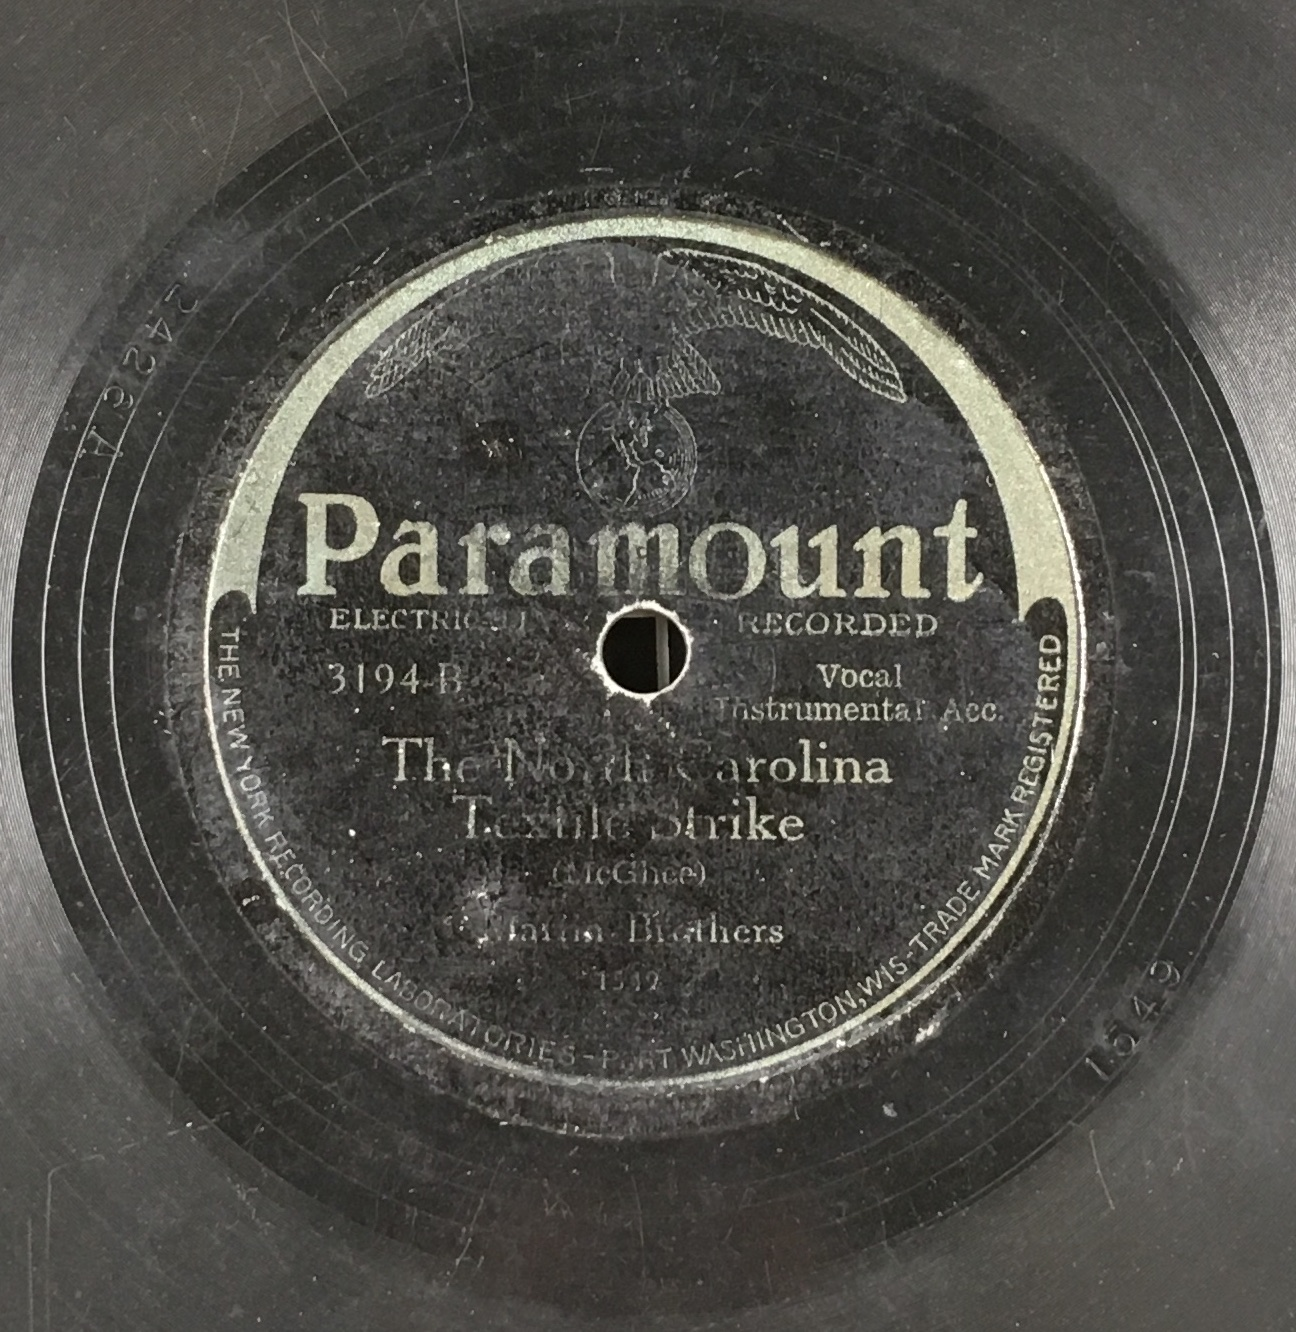 "Record label for 78RPM record. Text reads: Paramount, Electrically Recorded. 3194-B. Vocal, Instrumental Acc. The North Carolina Textile Strike (McGhee). Martin Brothers. Bottom of label reads: ""The New York Recording Laboratories - Port Washington, Wis-Trade Mark Registered."""